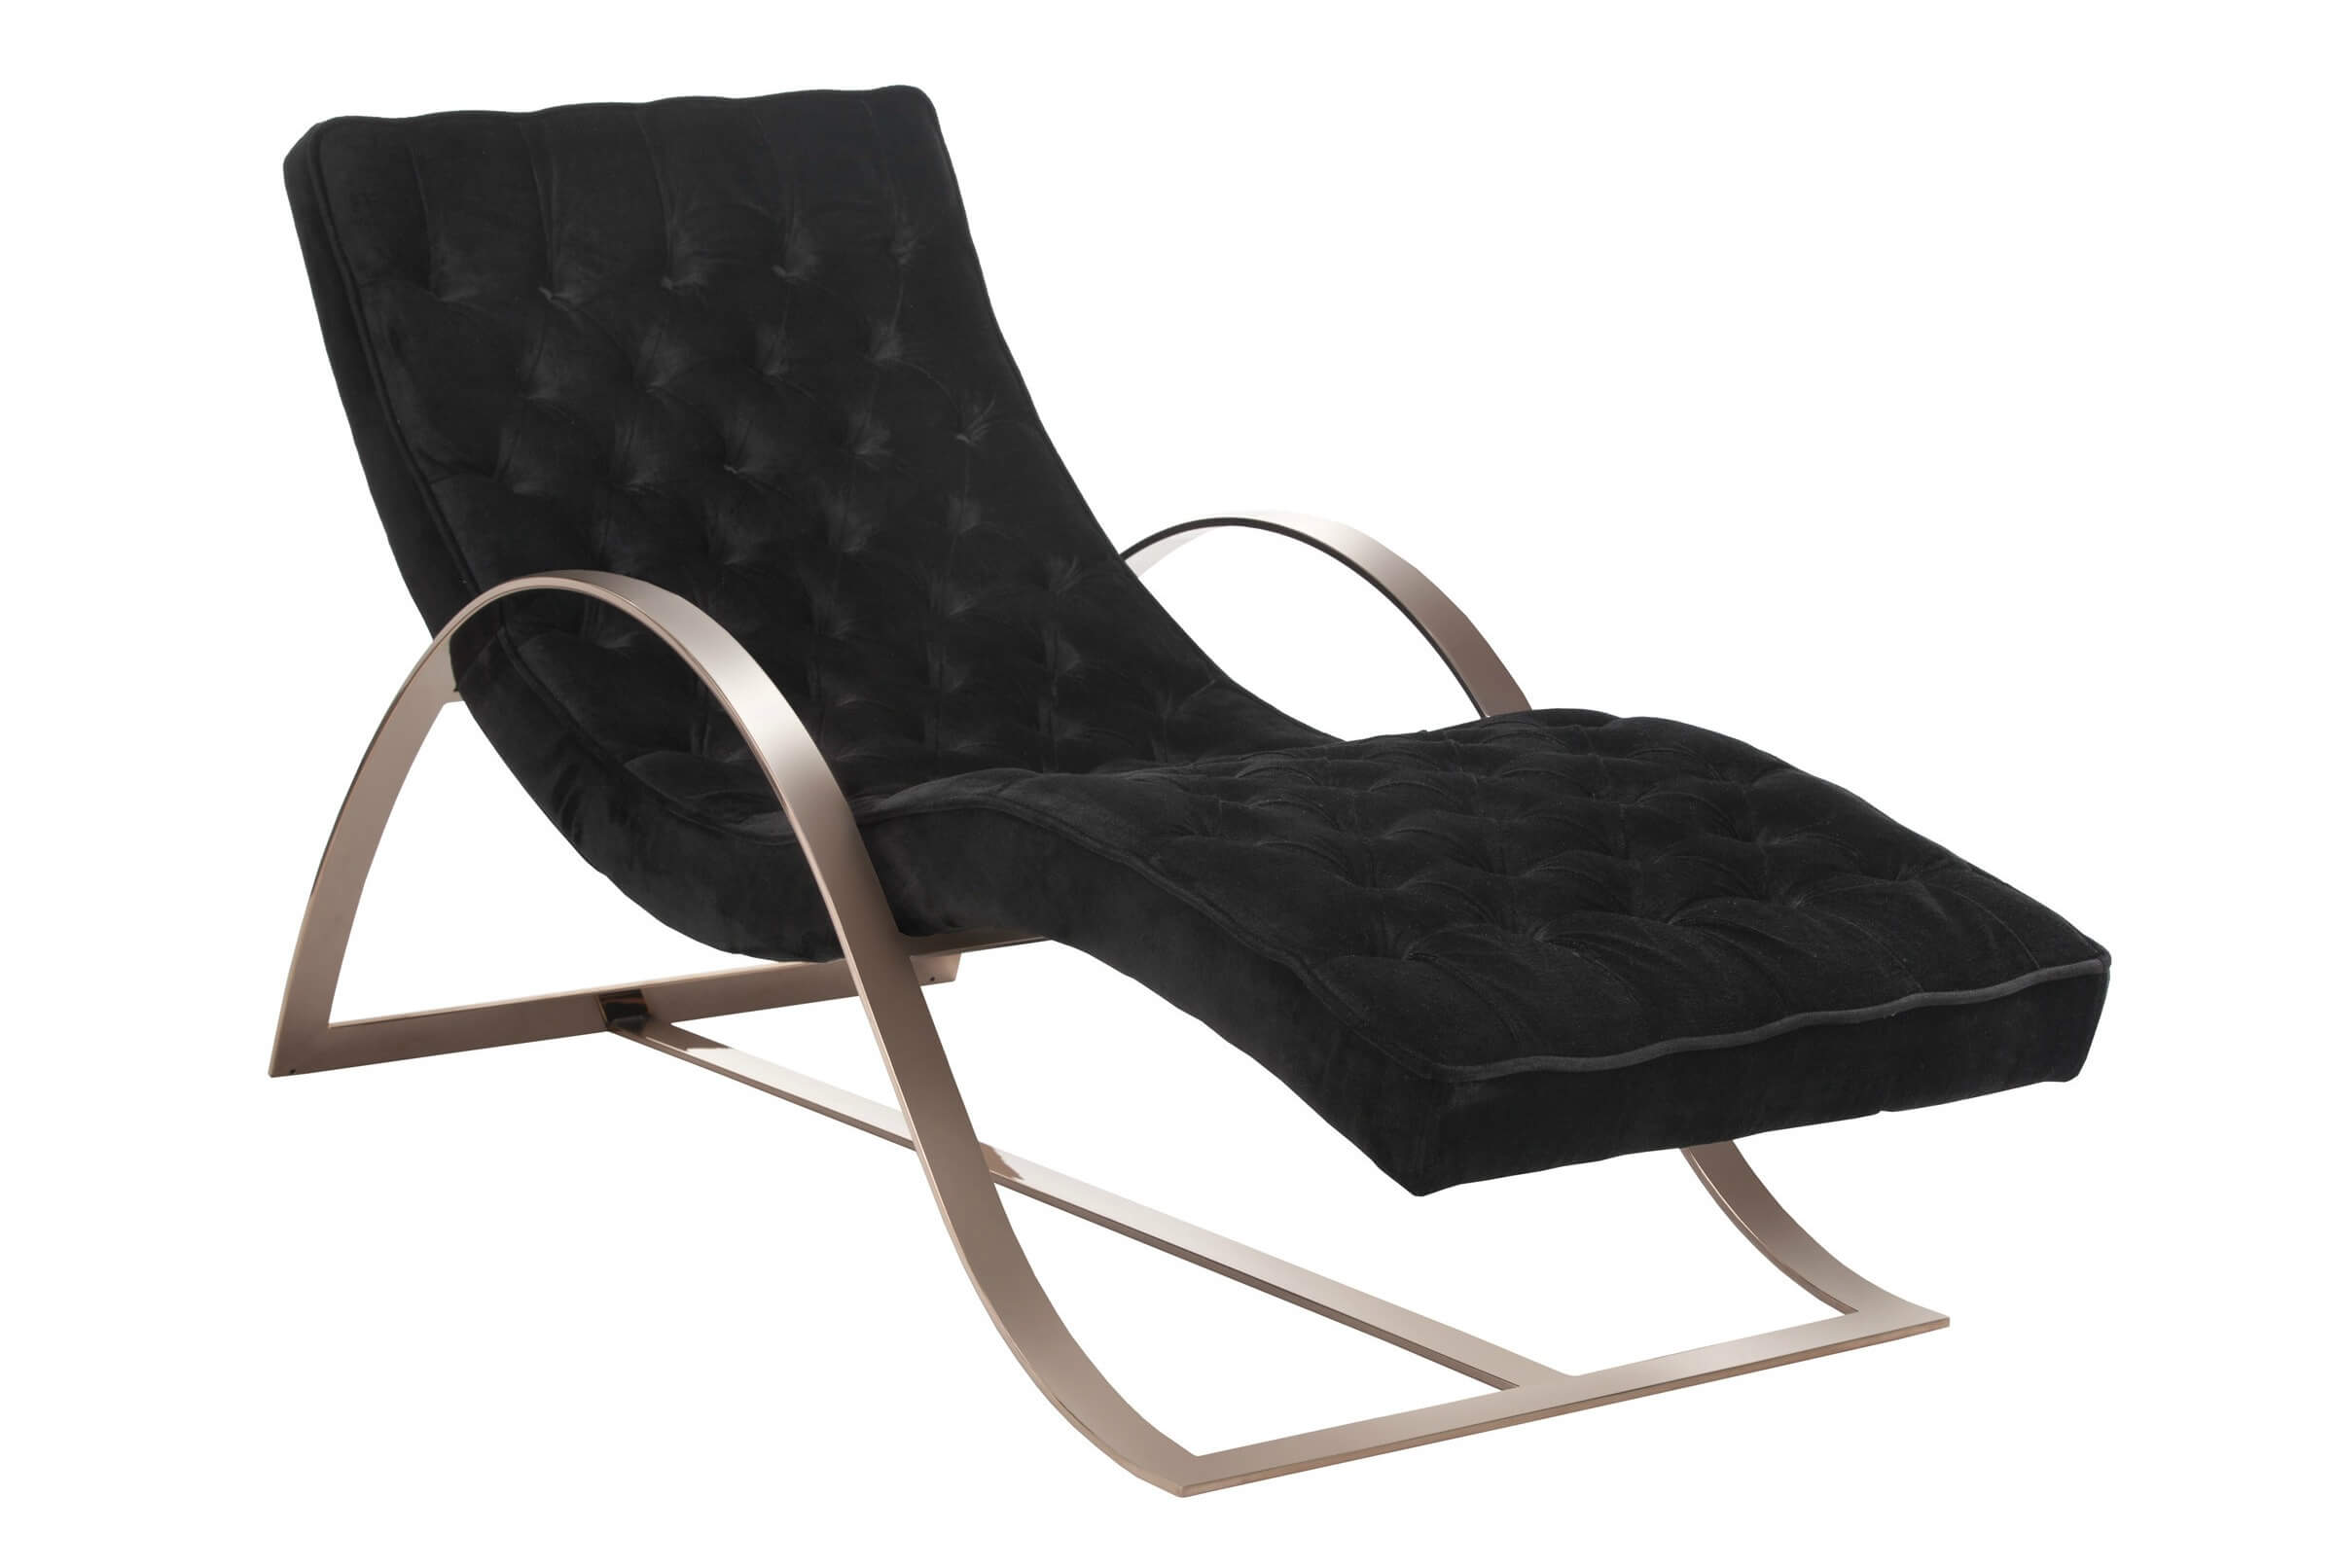 3black-chaise-lounge